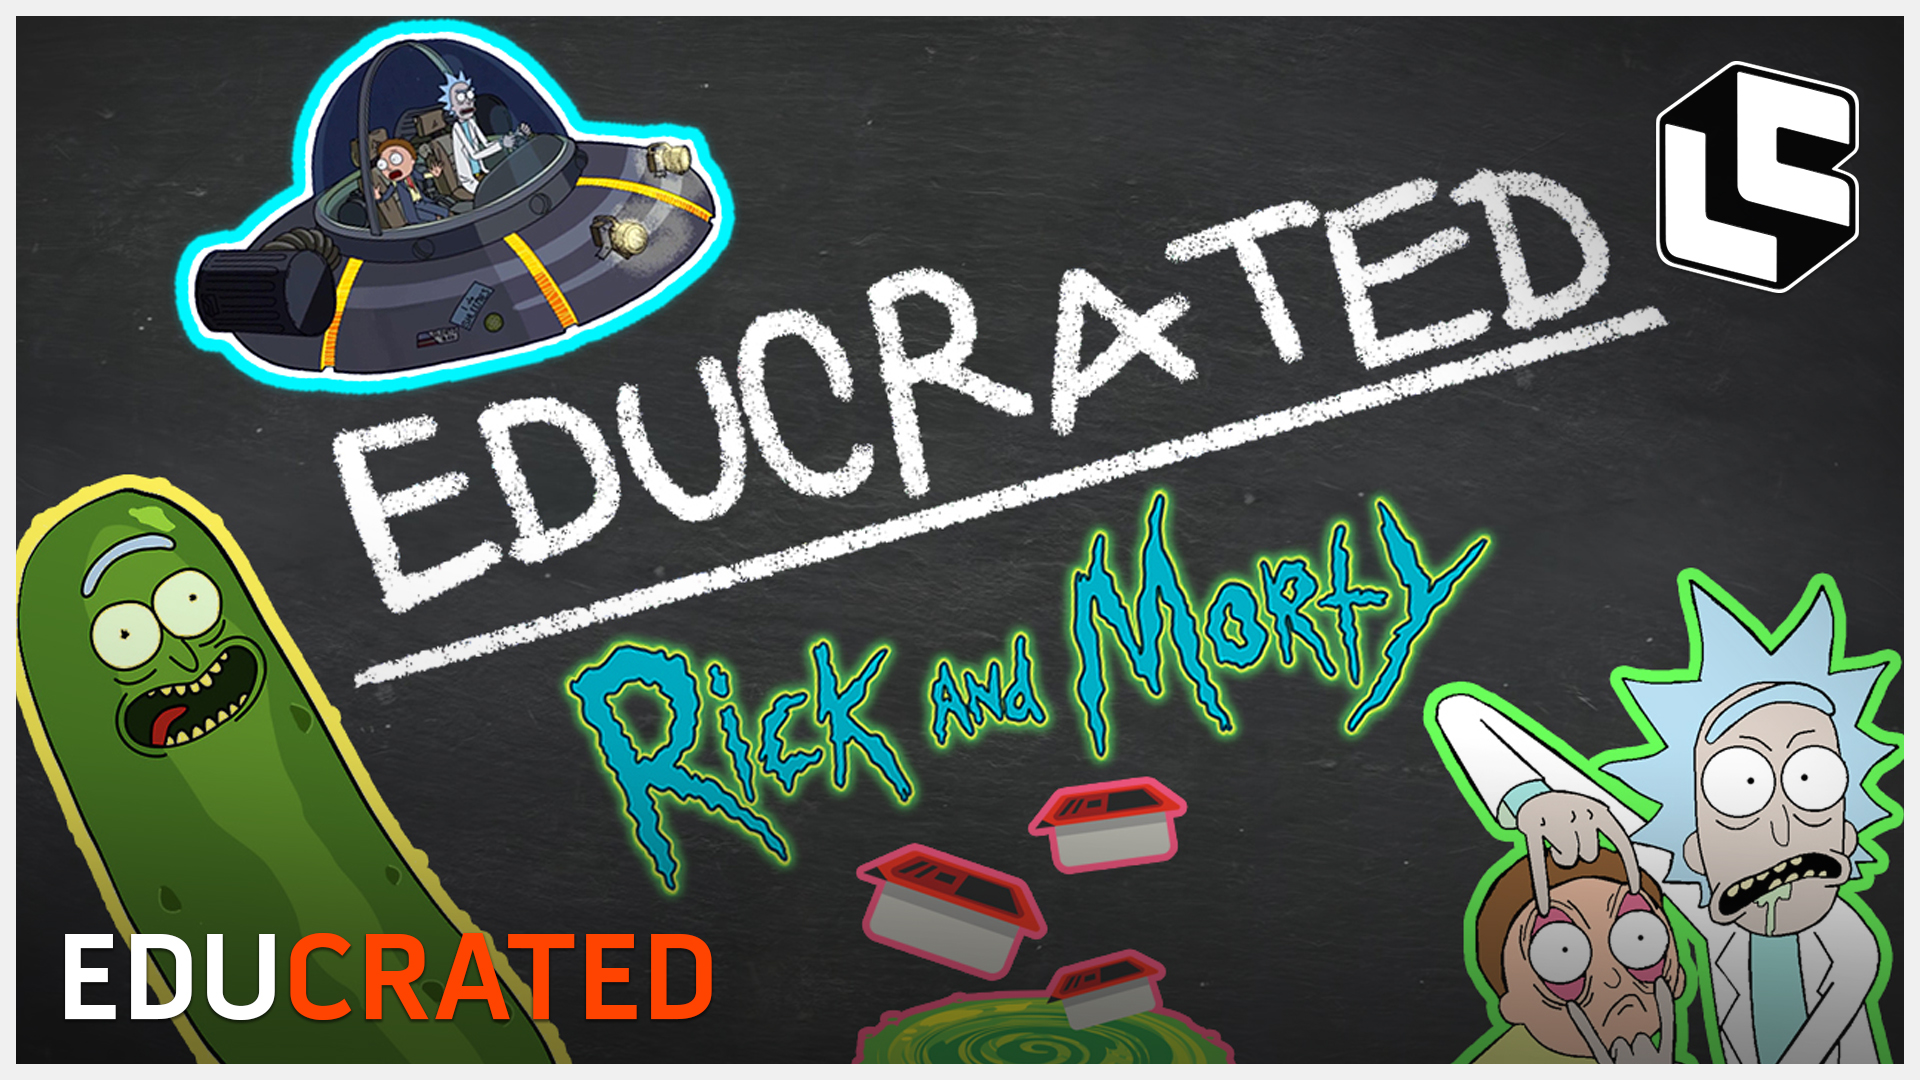 Loot Crate Studios Presents: EDUCRATED! Rick and Morty Edition!